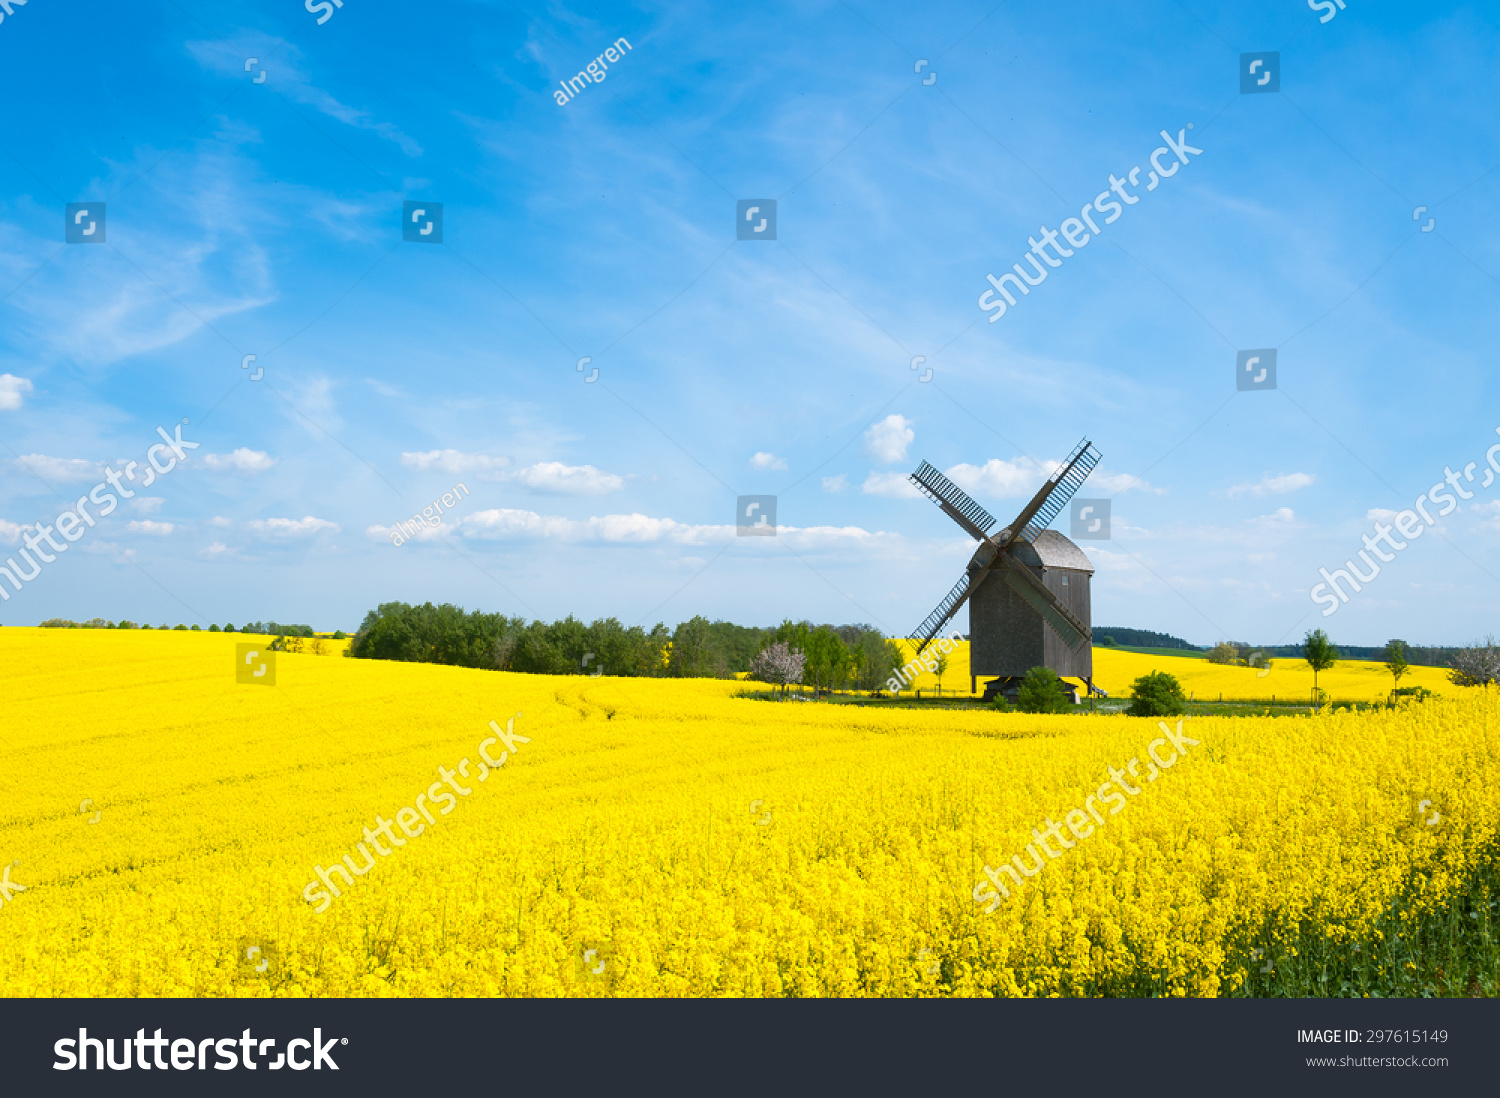 Surrounded By Canoloa Feilds Quotes: Old Windmill Surrounded By Canola Fields In East-Pomerania